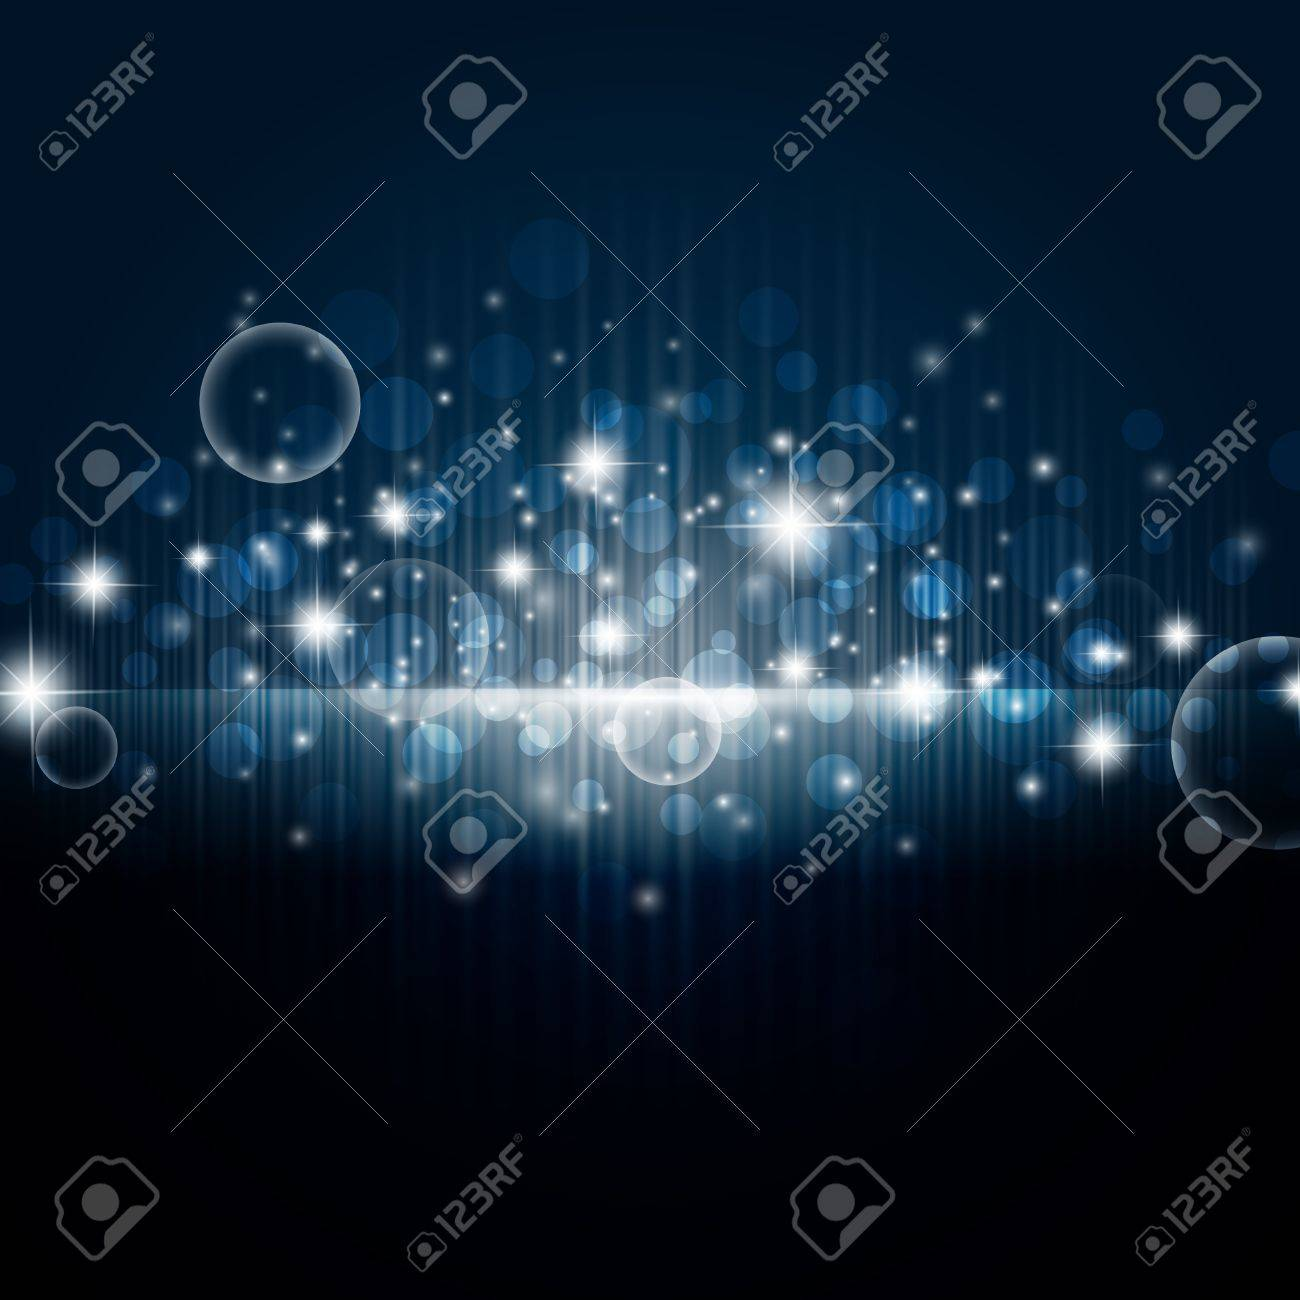 bright night background with stars and lights Stock Vector - 8229853